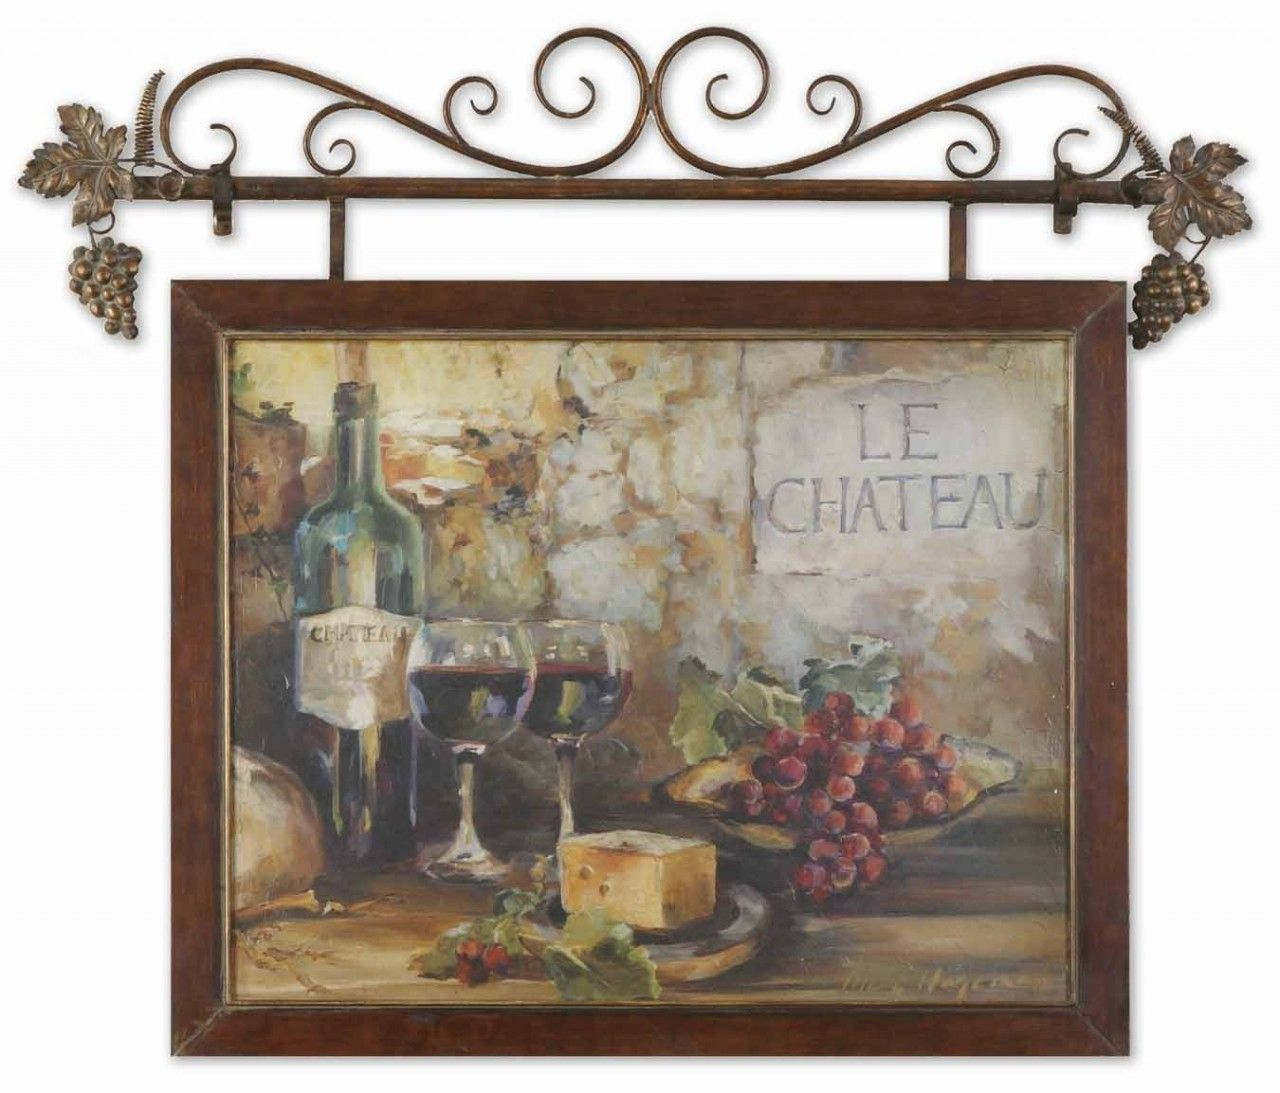 Pizzazz home decor unique home decor old world french for Unusual decorative accessories